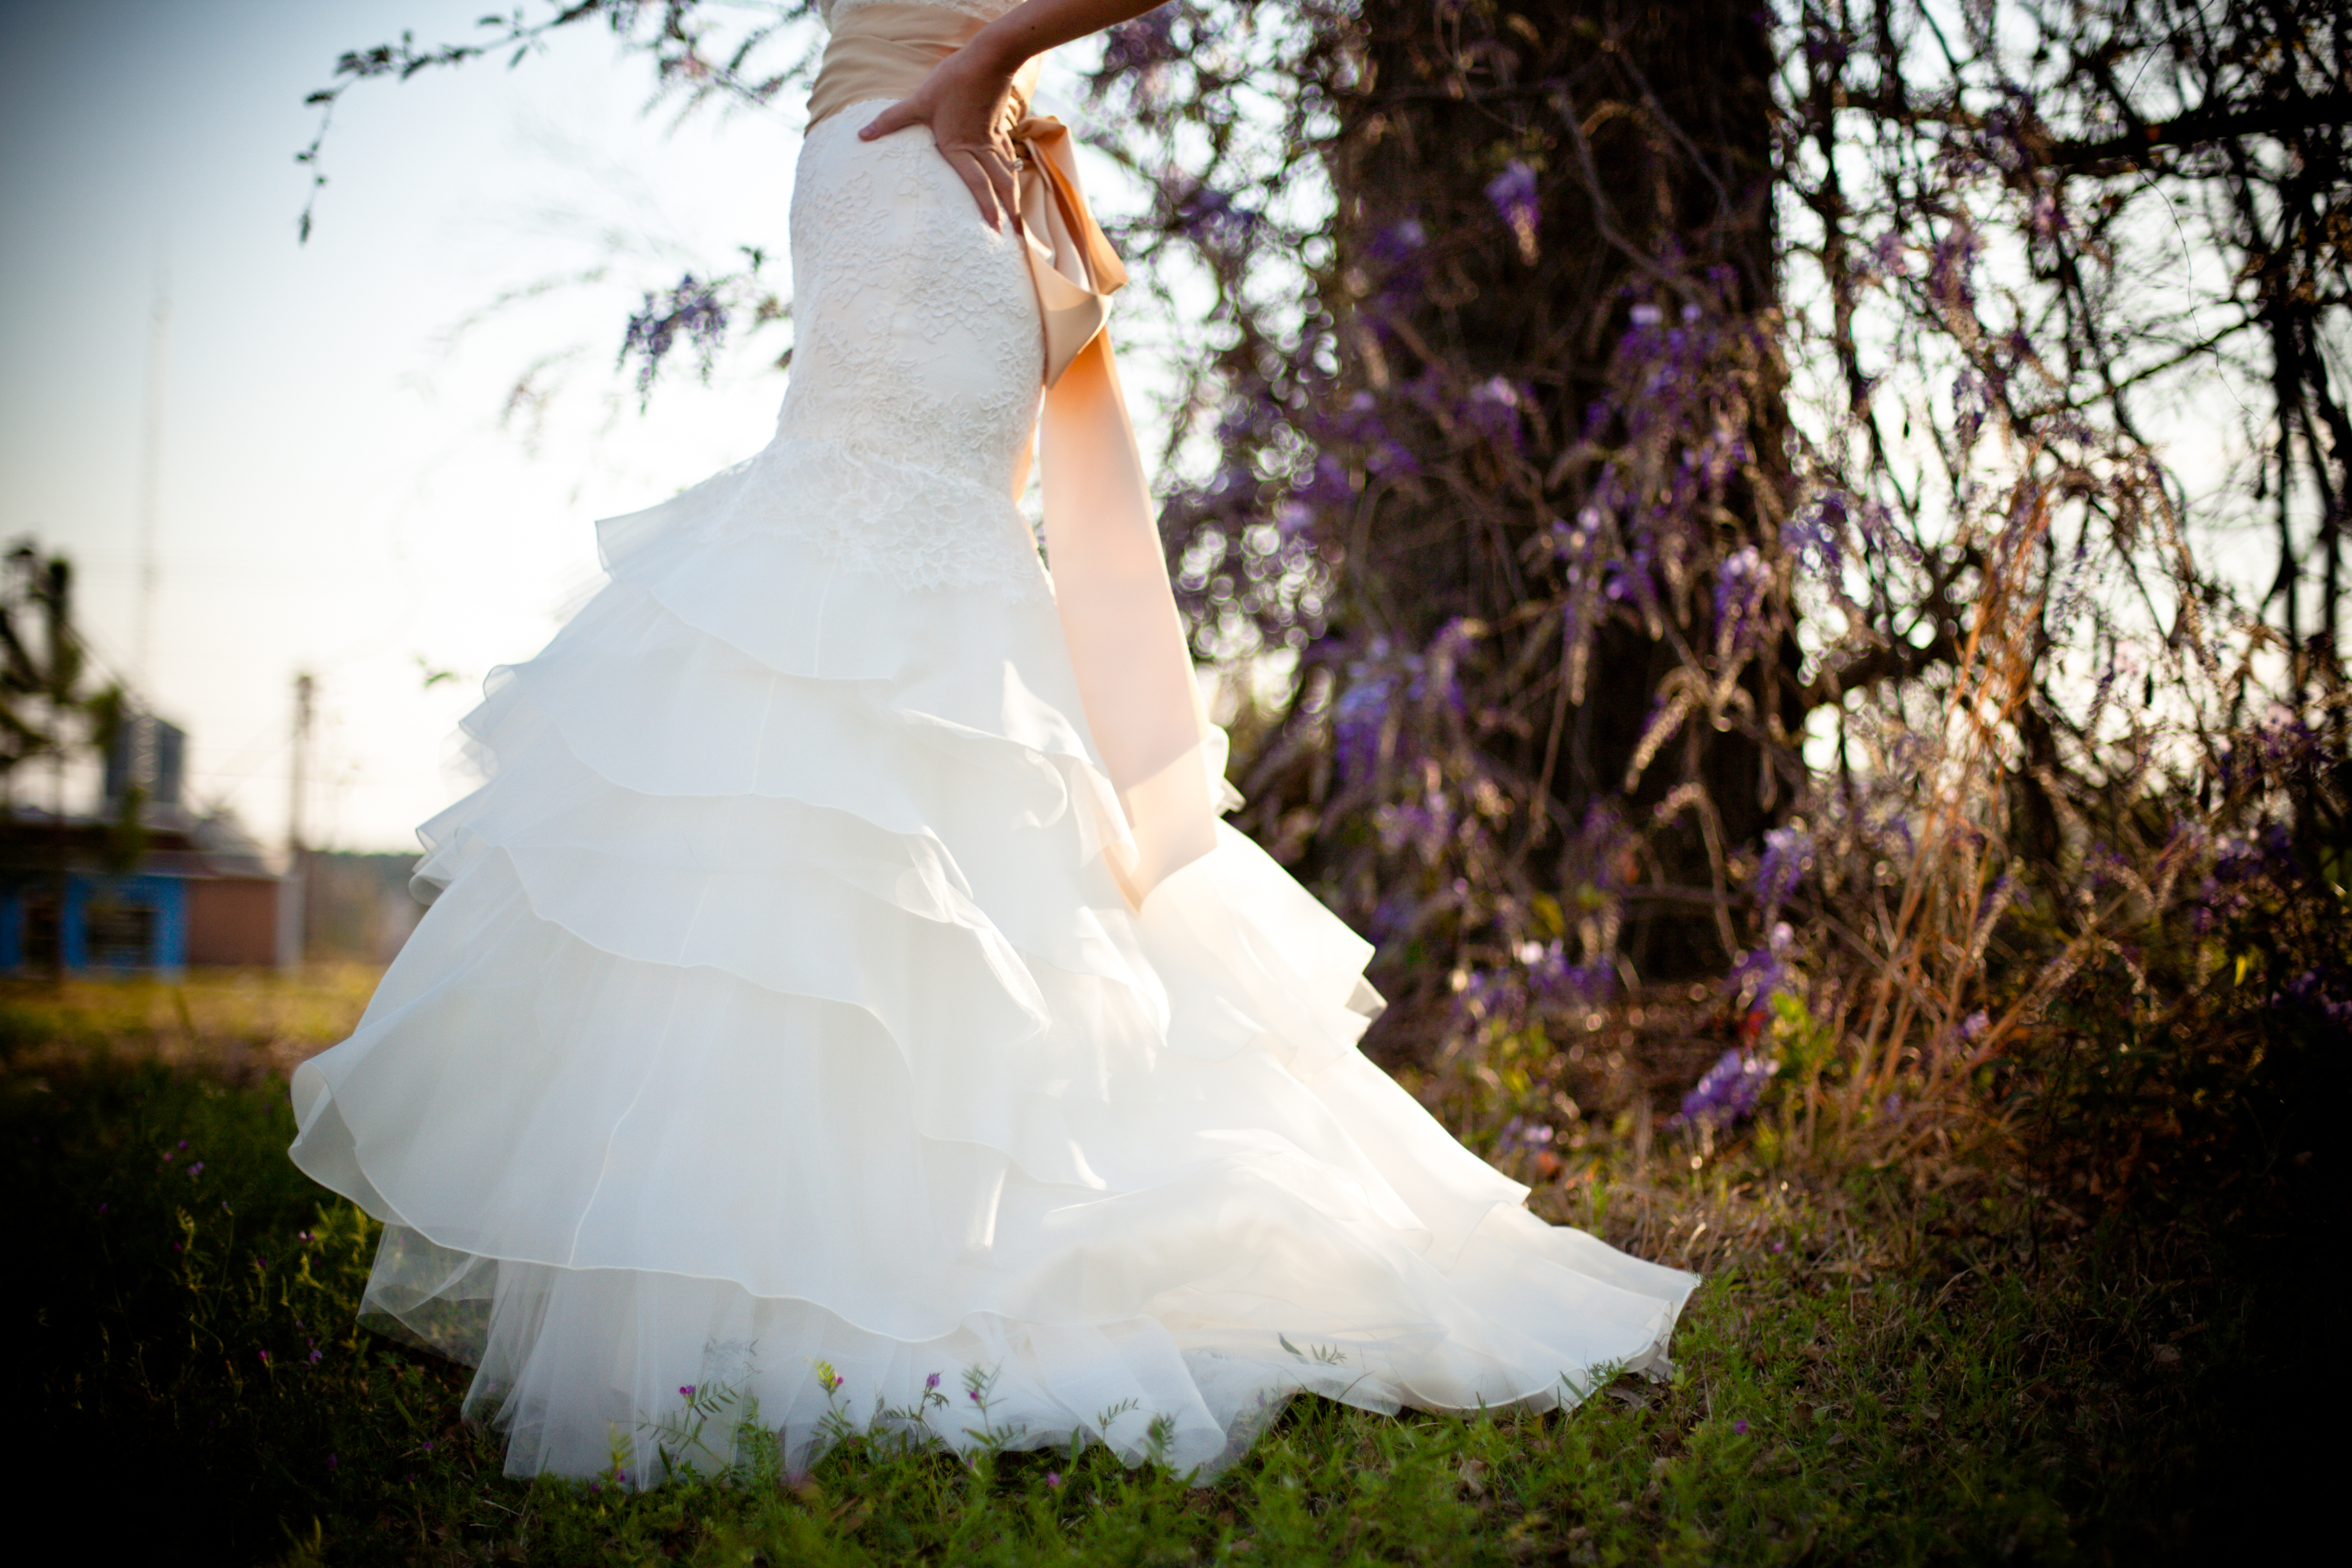 public-domain-images-free-stock-photos-wedding-dress-outdoors-green-grass-wisteria-vines